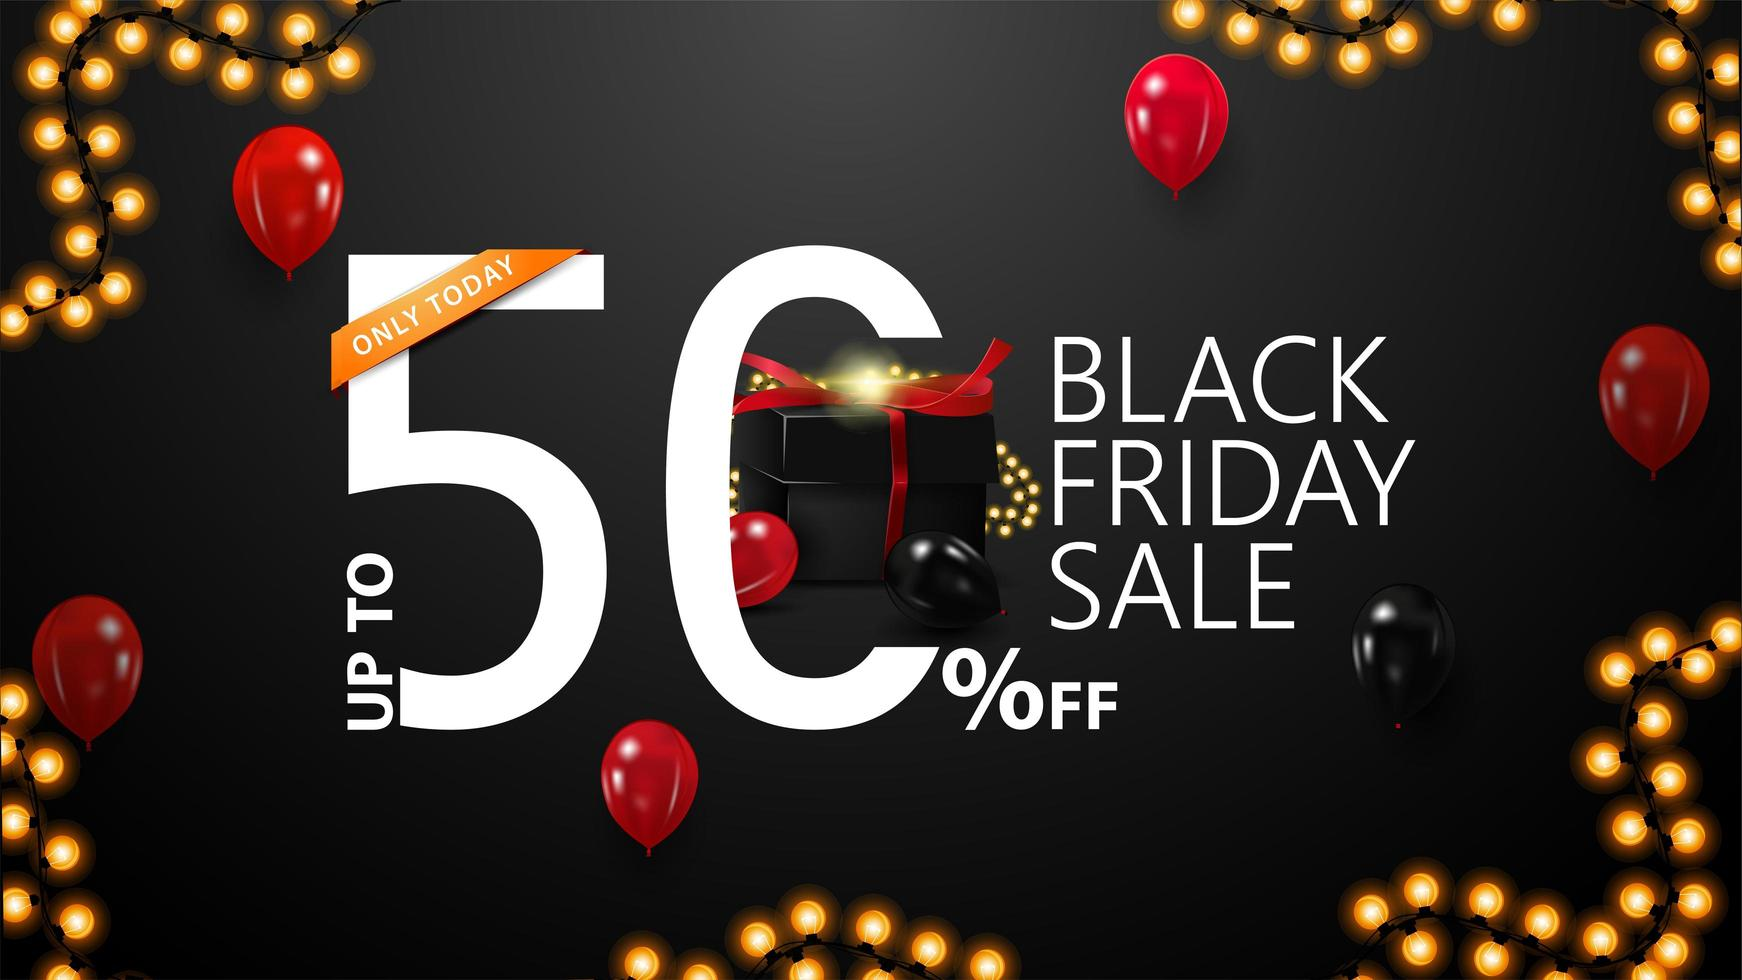 Black Friday Sale, up to 50 off banner vector